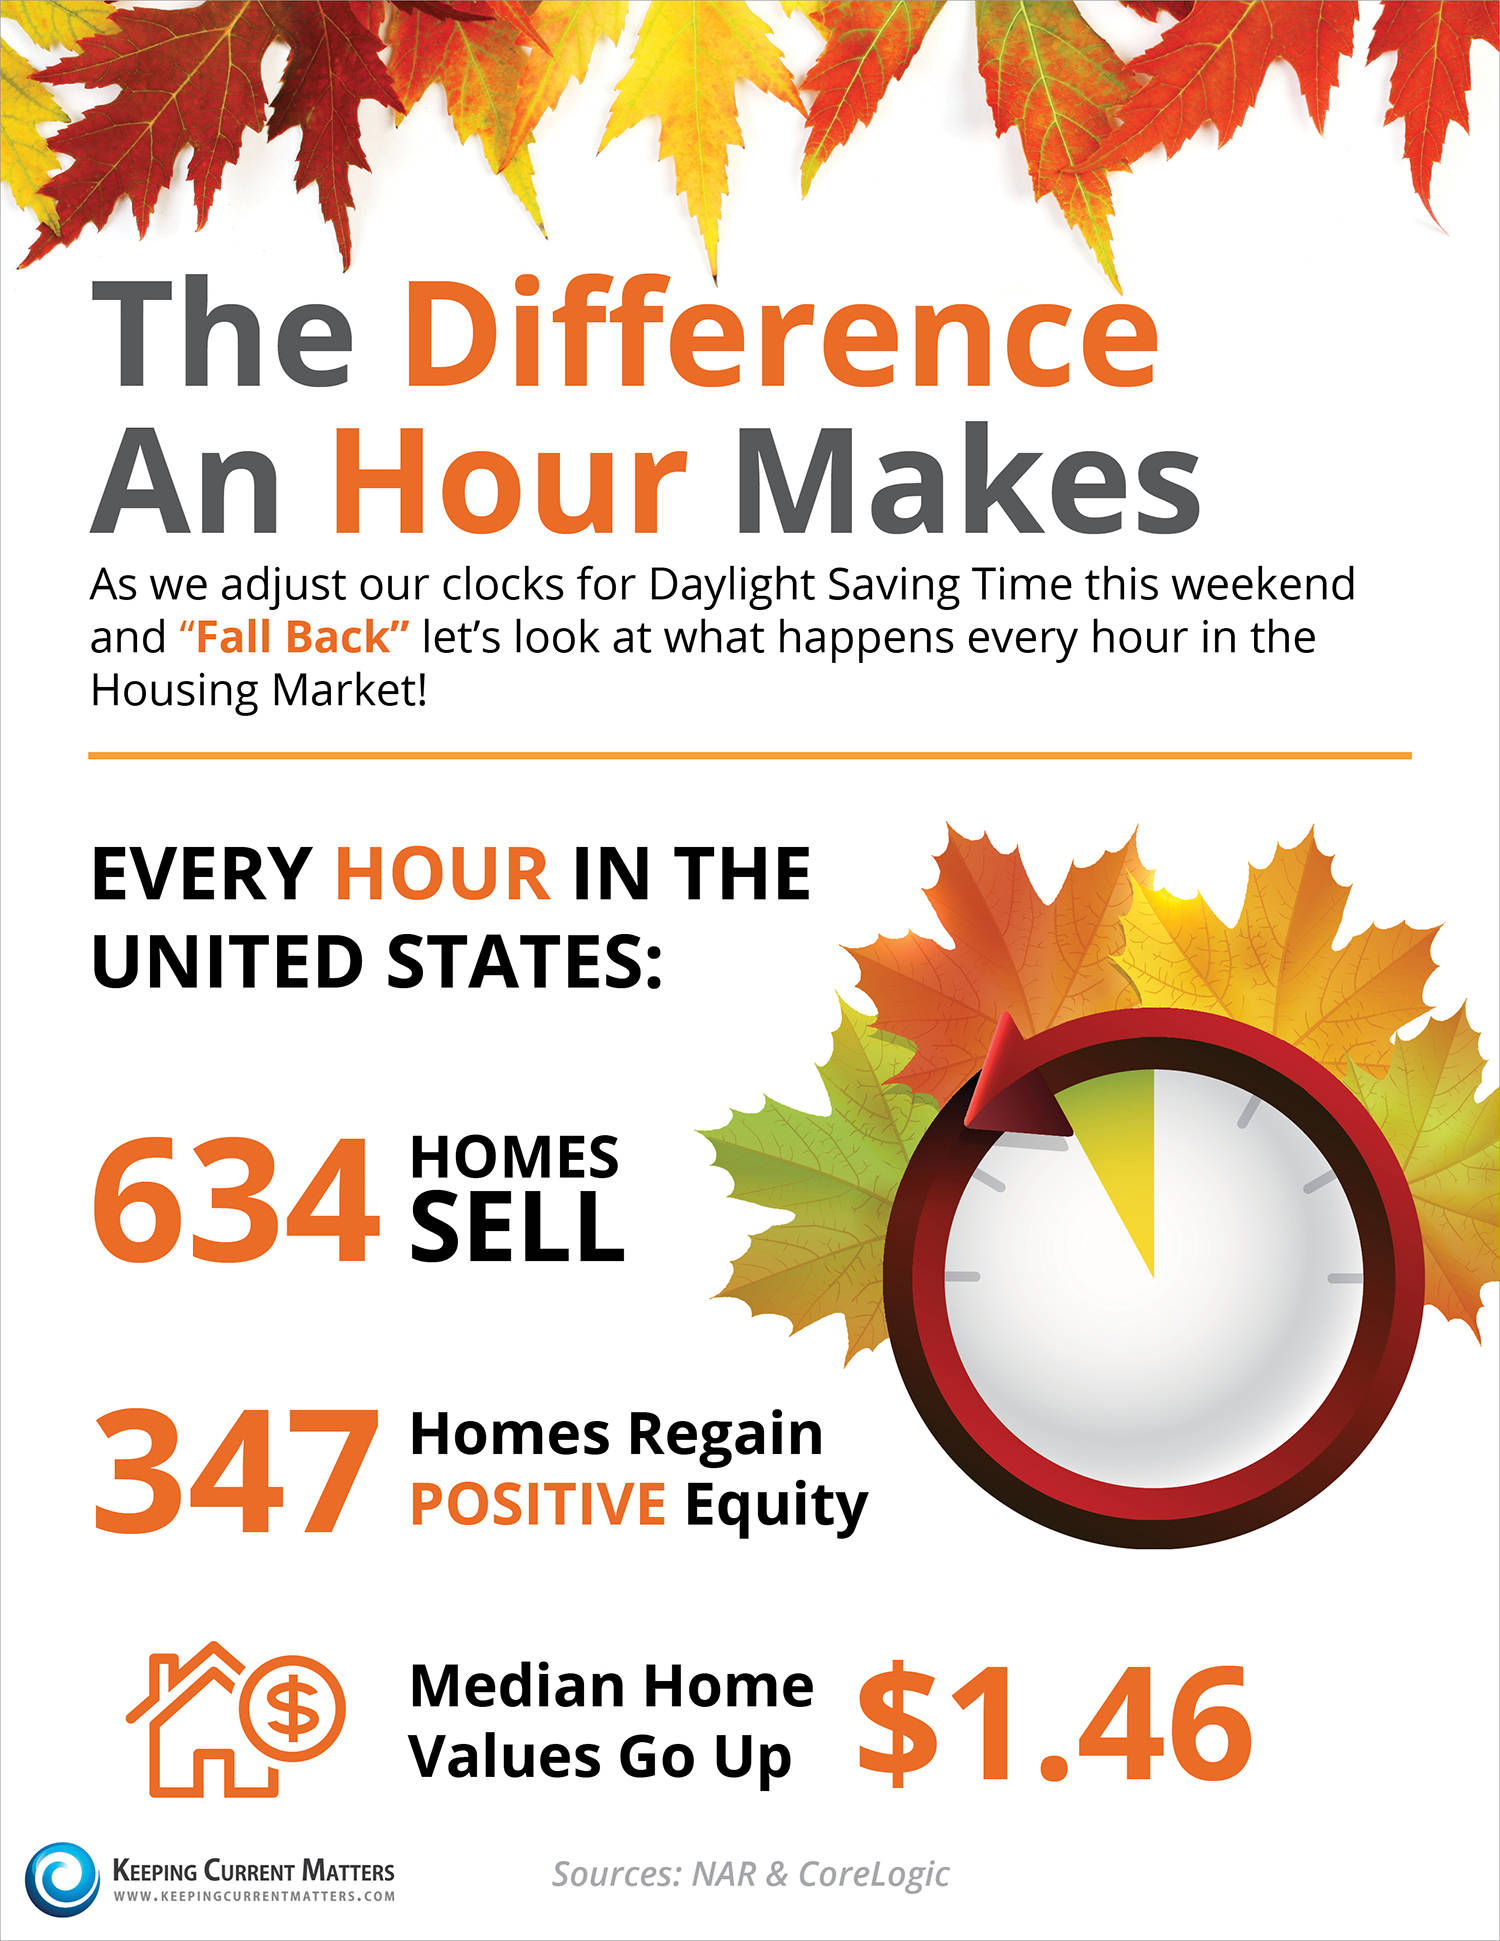 The differnce one hour makes inthe housing market